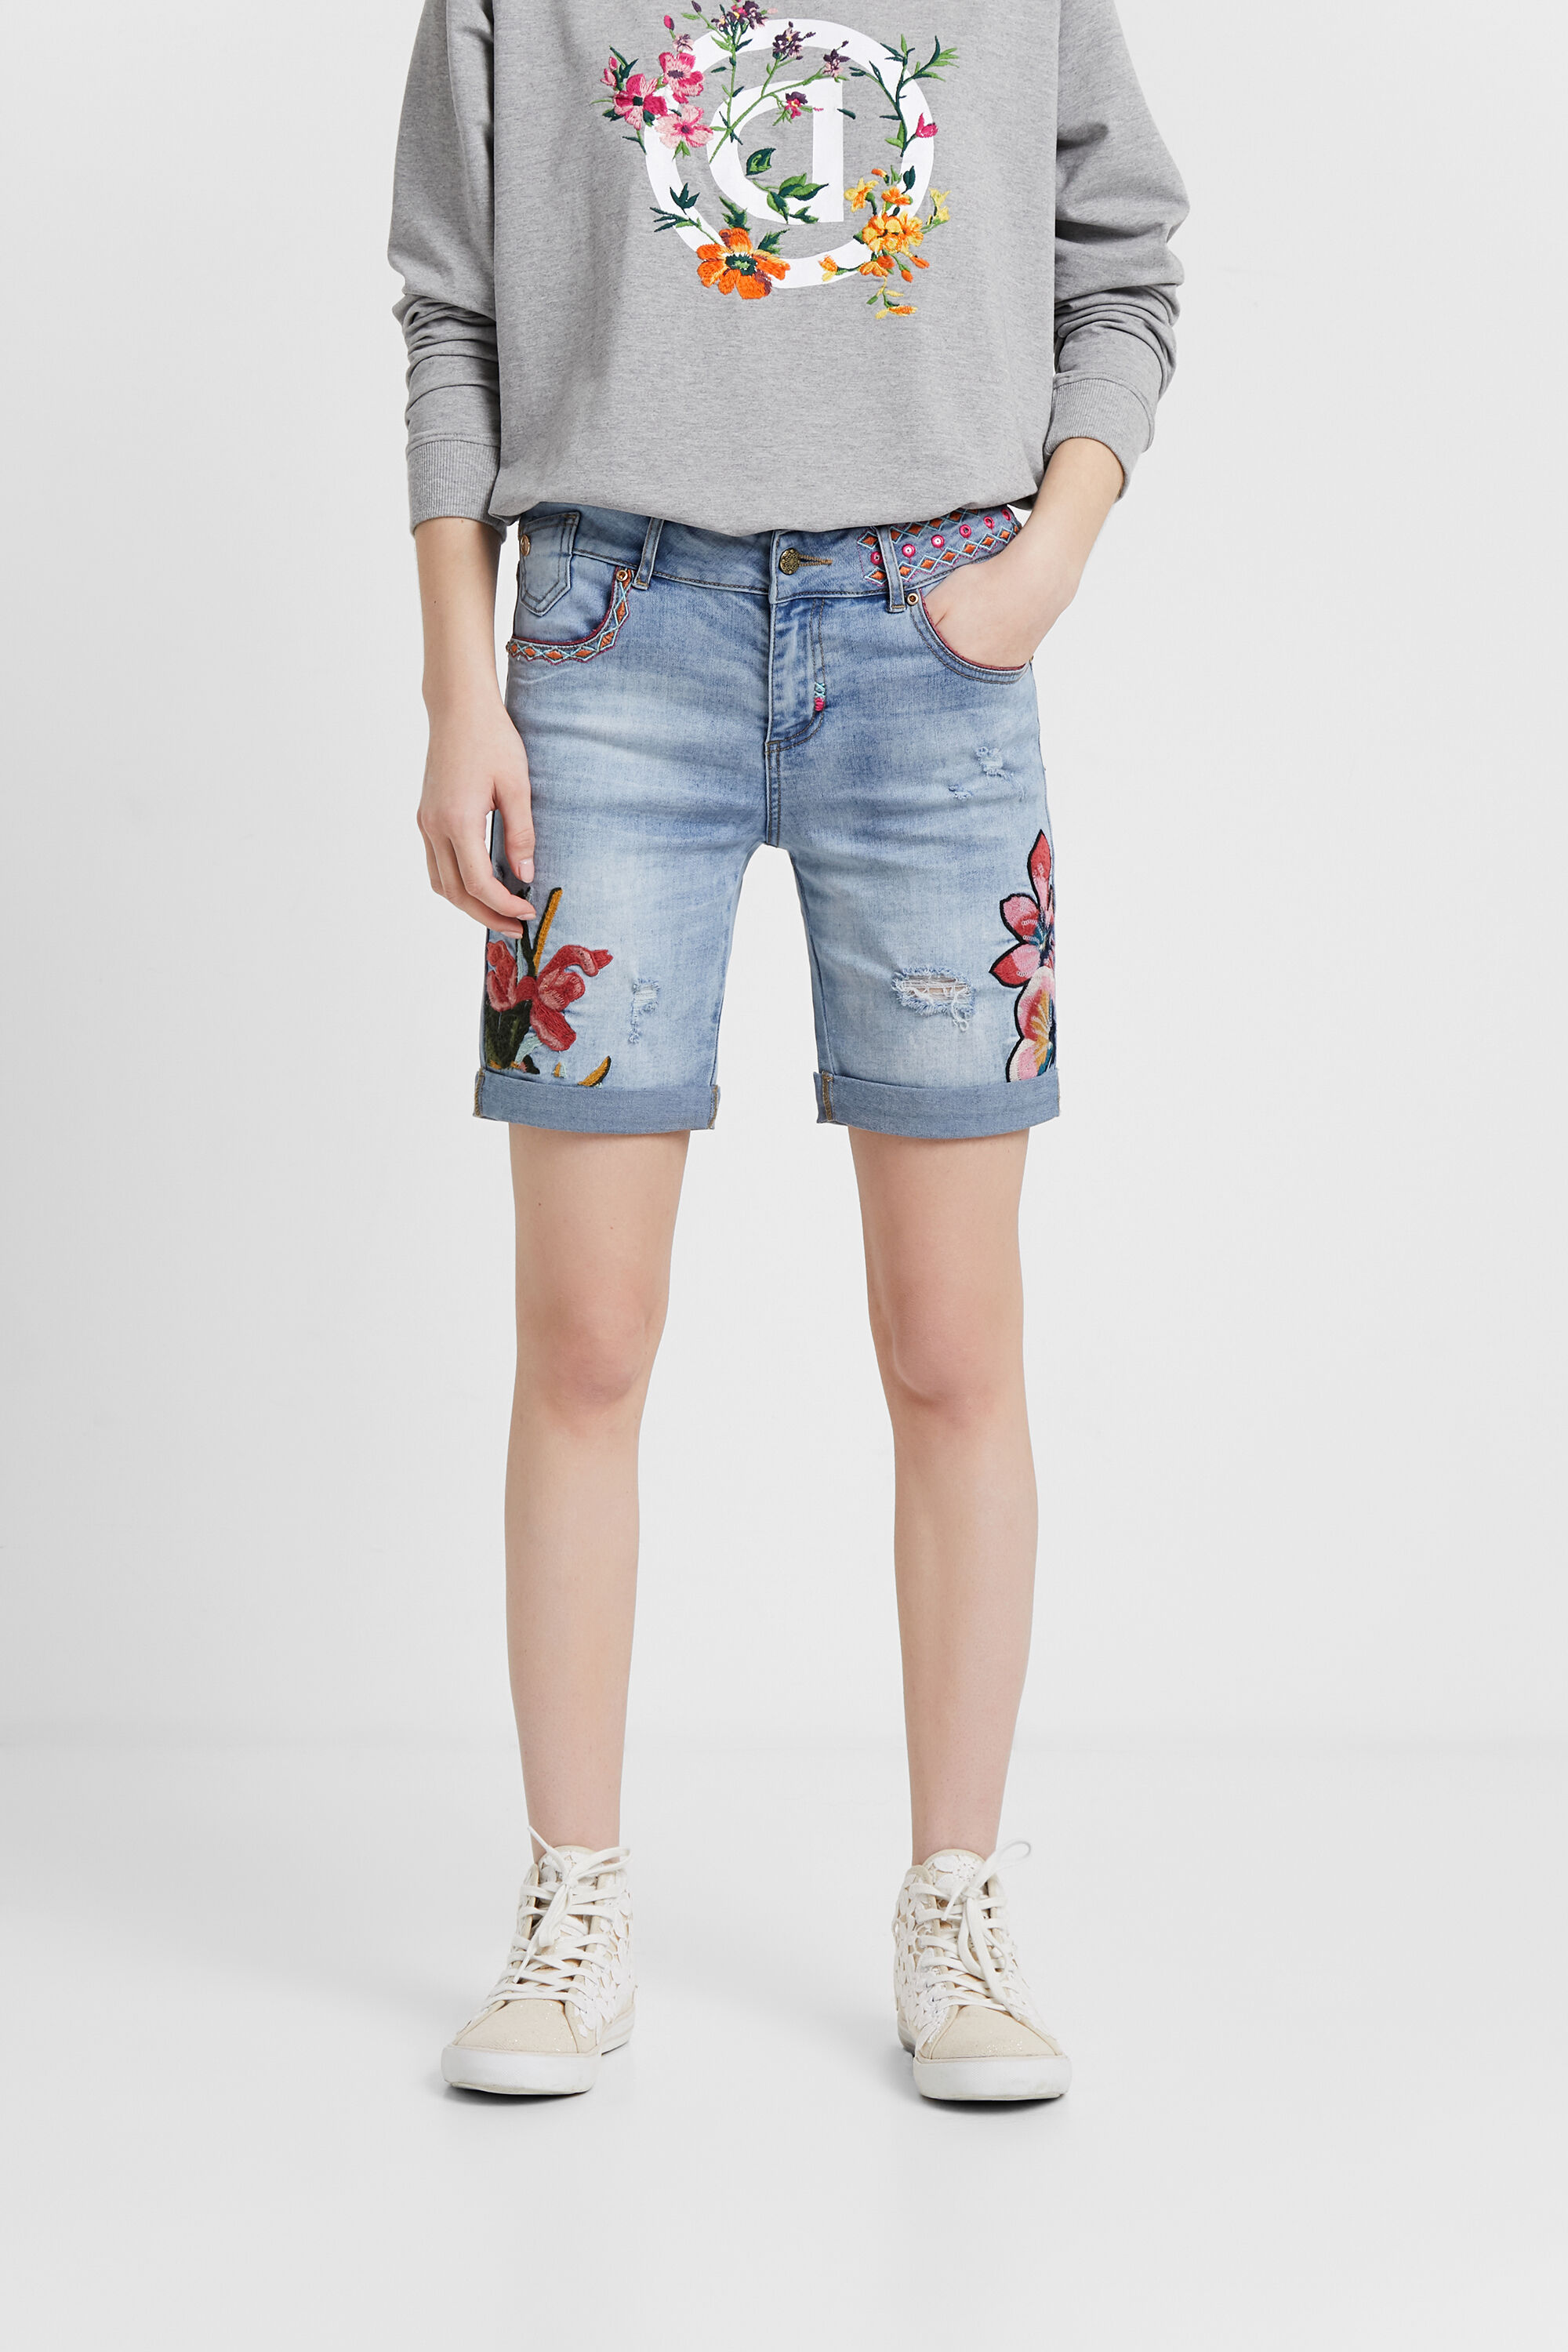 Floral denim shorts | Desigual.com